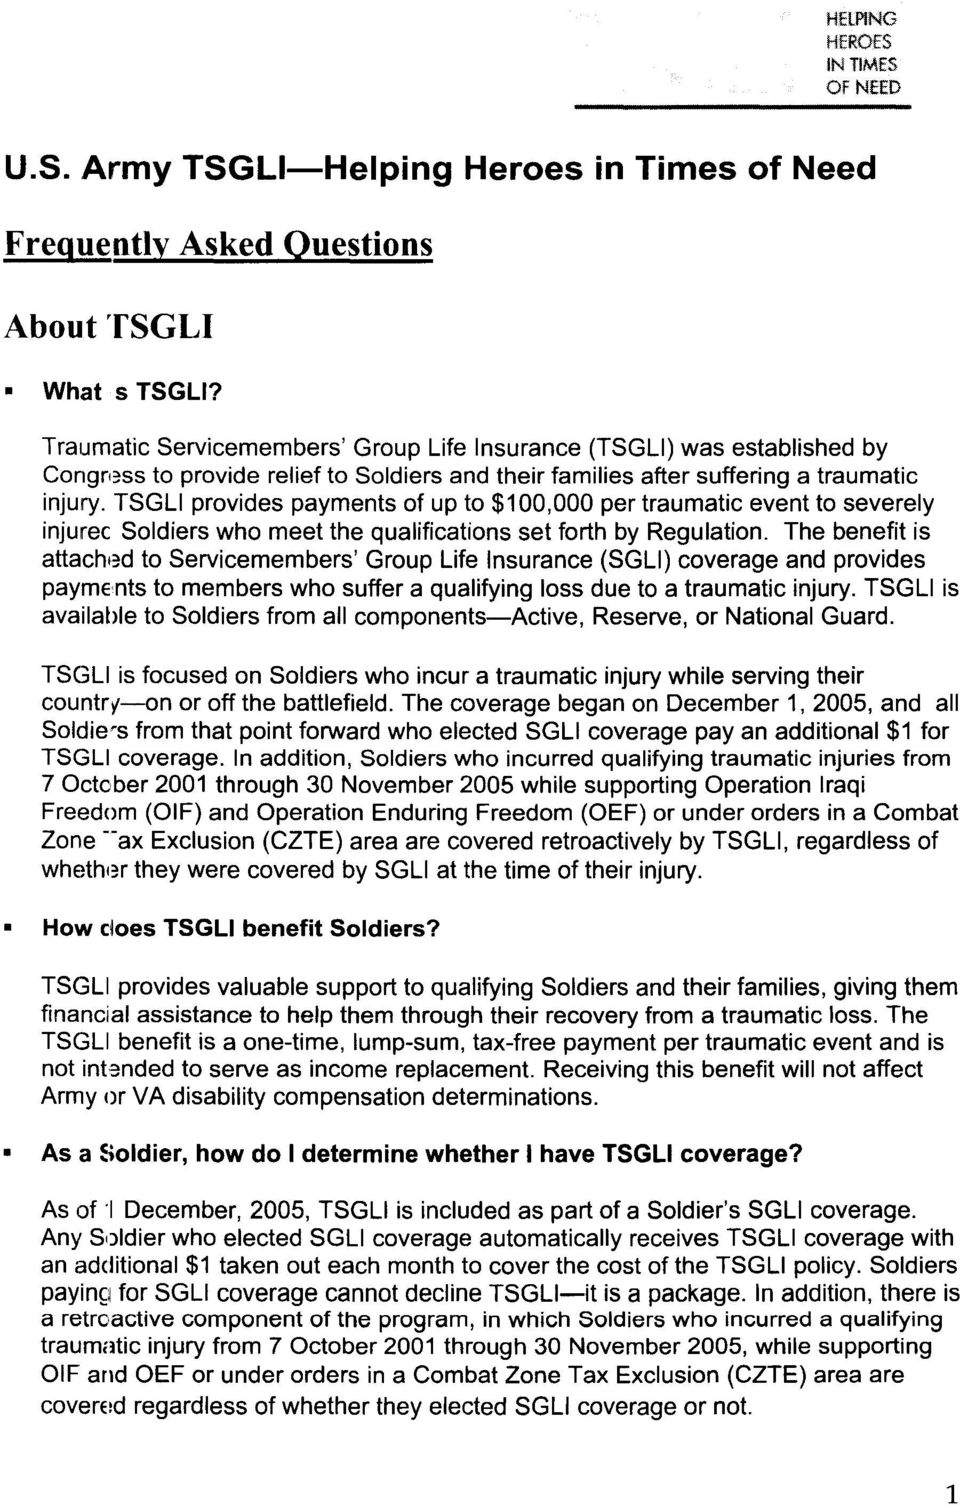 TSGLI provides payments of up to $100,000 per traumatic event to severely injurec Soldiers who meet the qualifications set forth by Regulation.